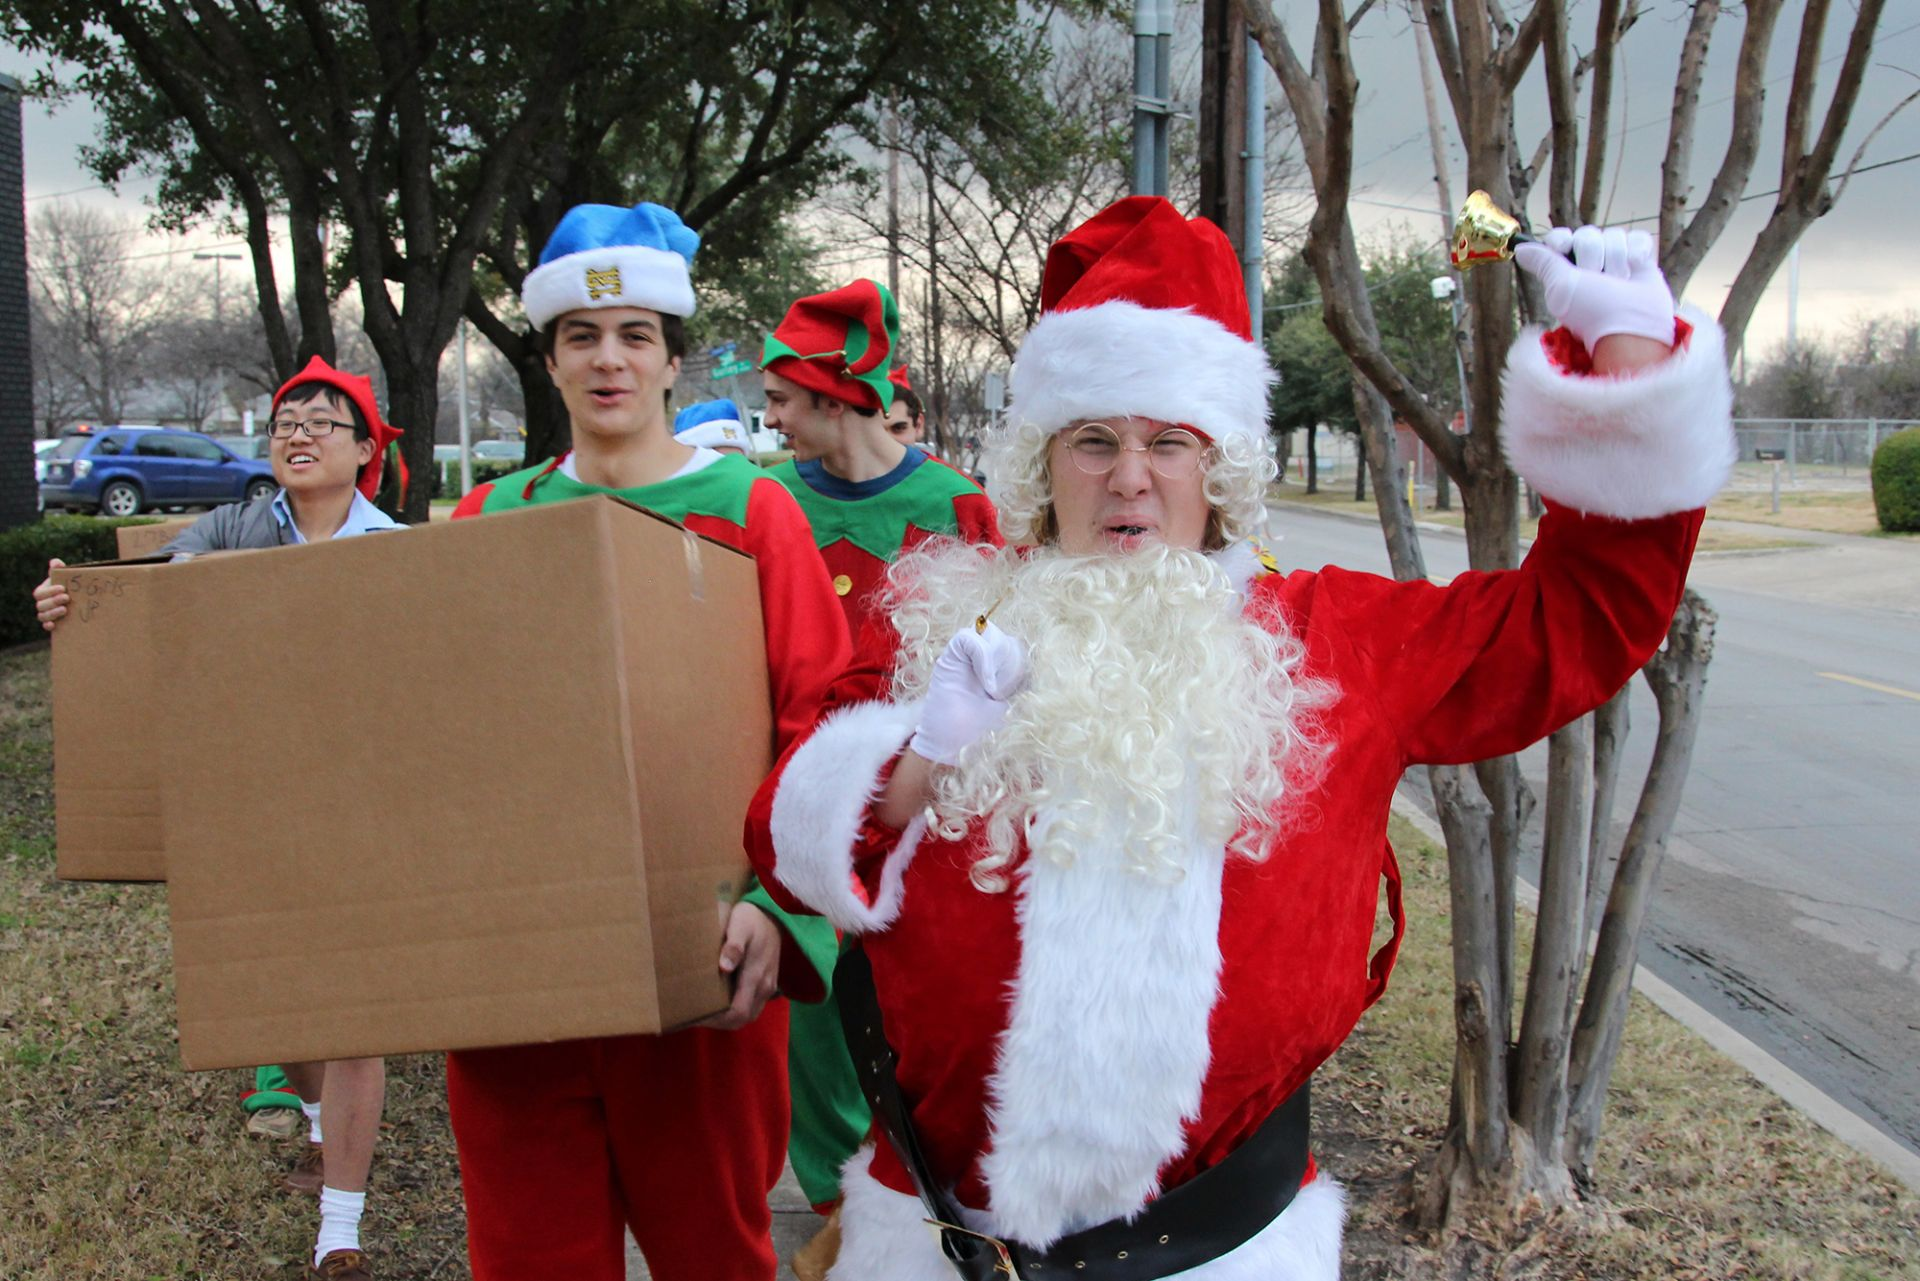 Santa and his elves deliver presents to David's Place in Dallas.